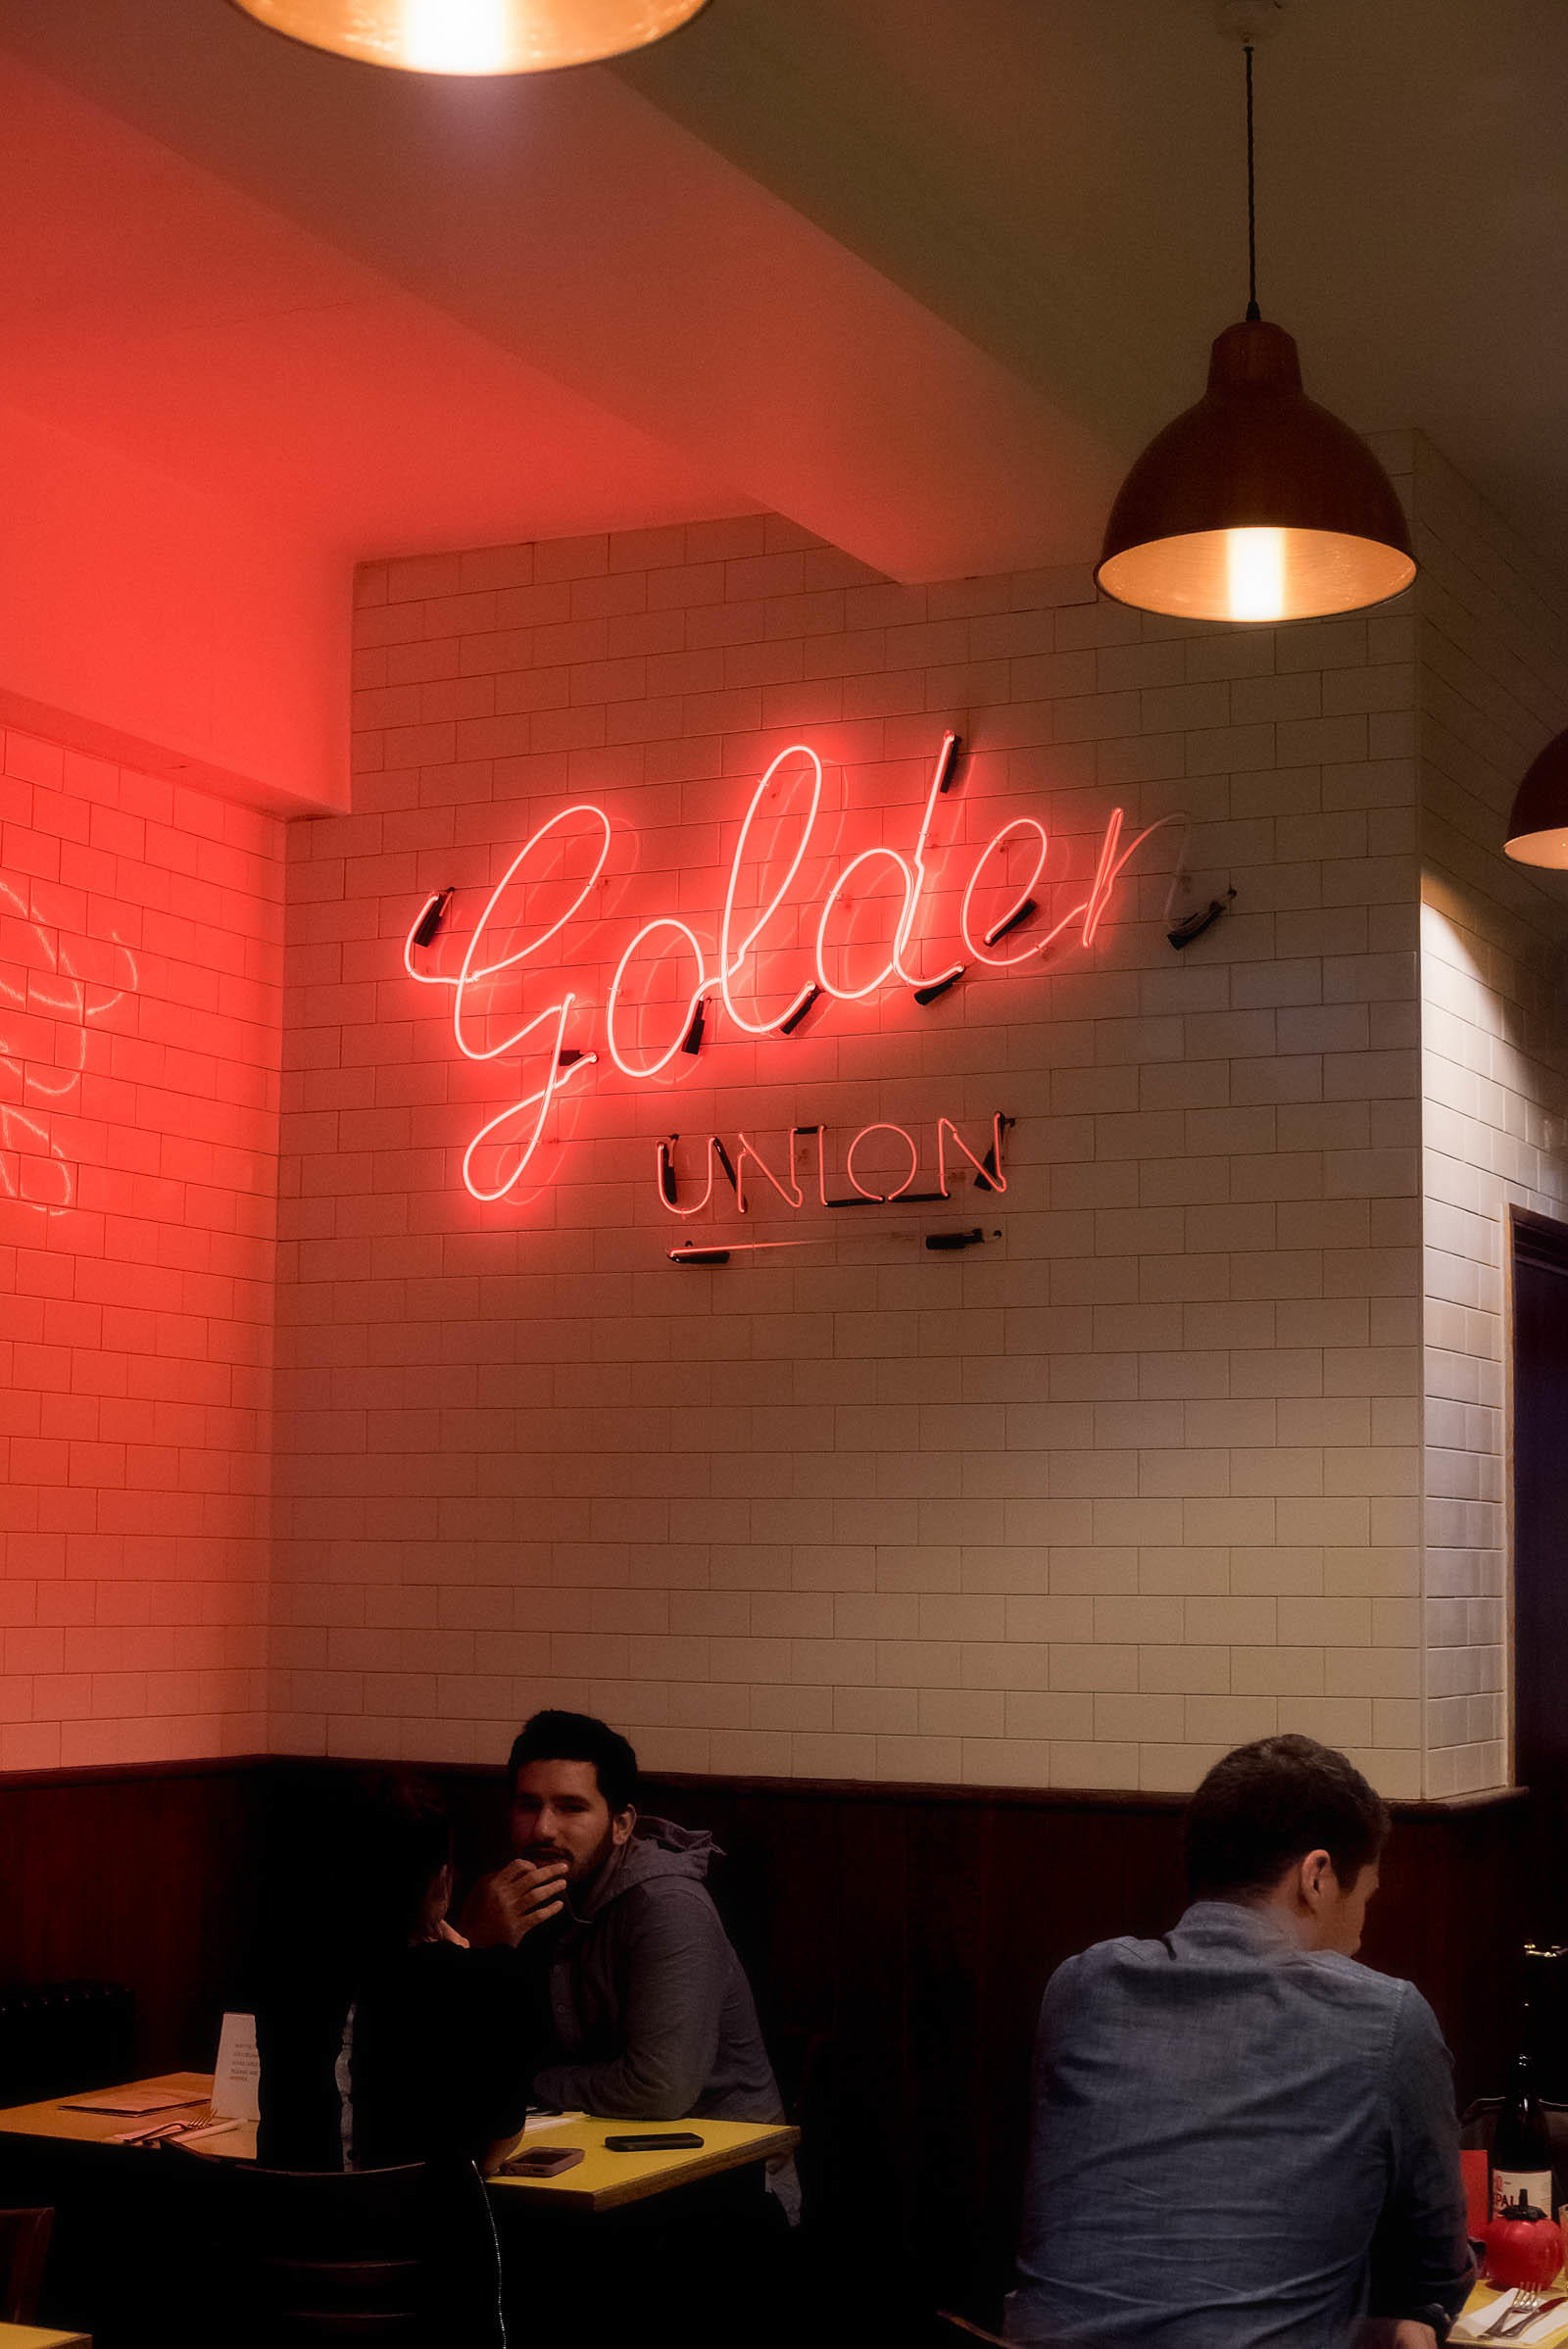 Golden Union Fish & Chips London